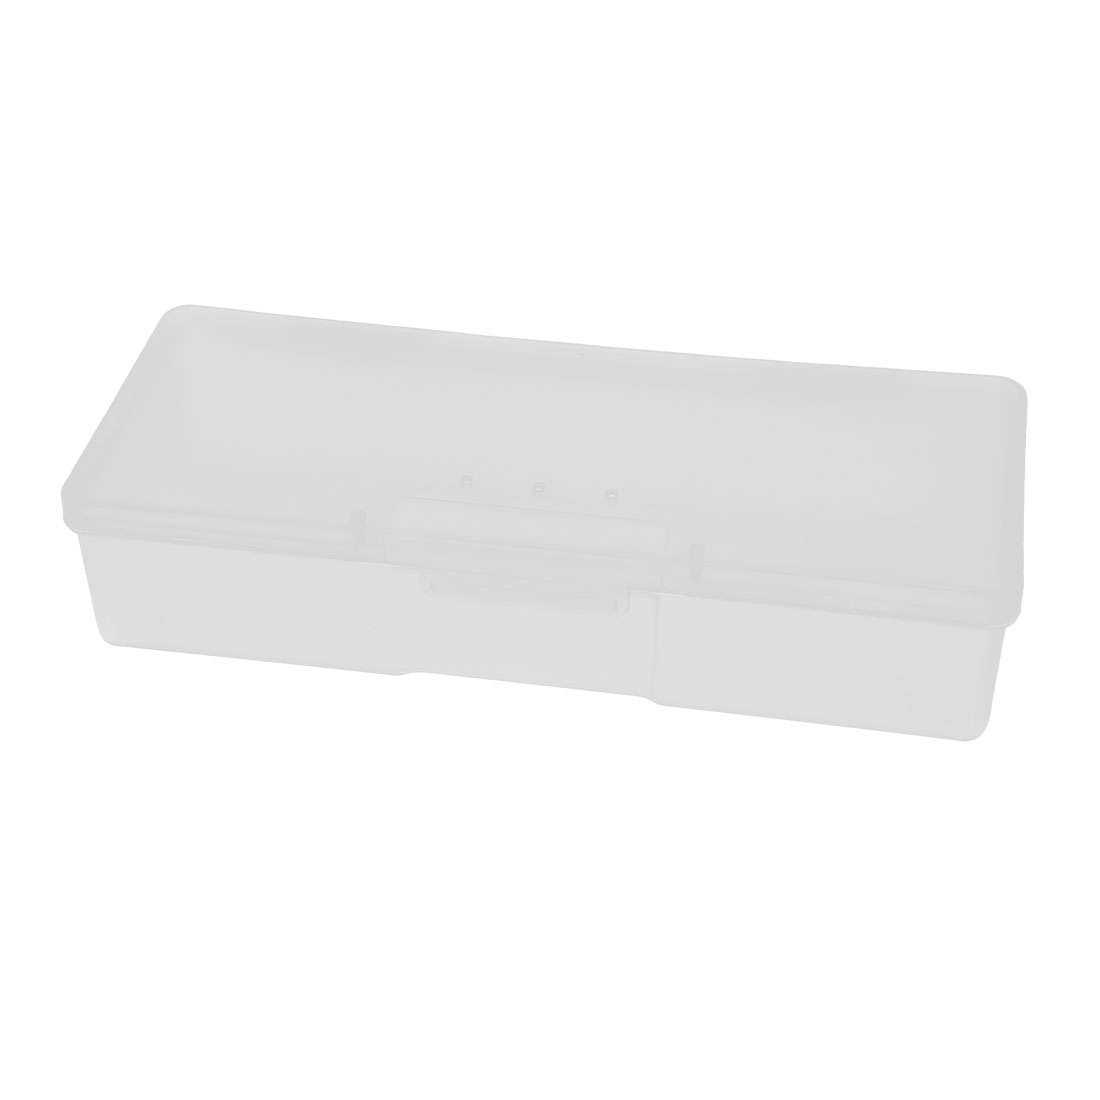 White Plastic Single Slot Comestics Aseptic Cotton Storage Case Box Container